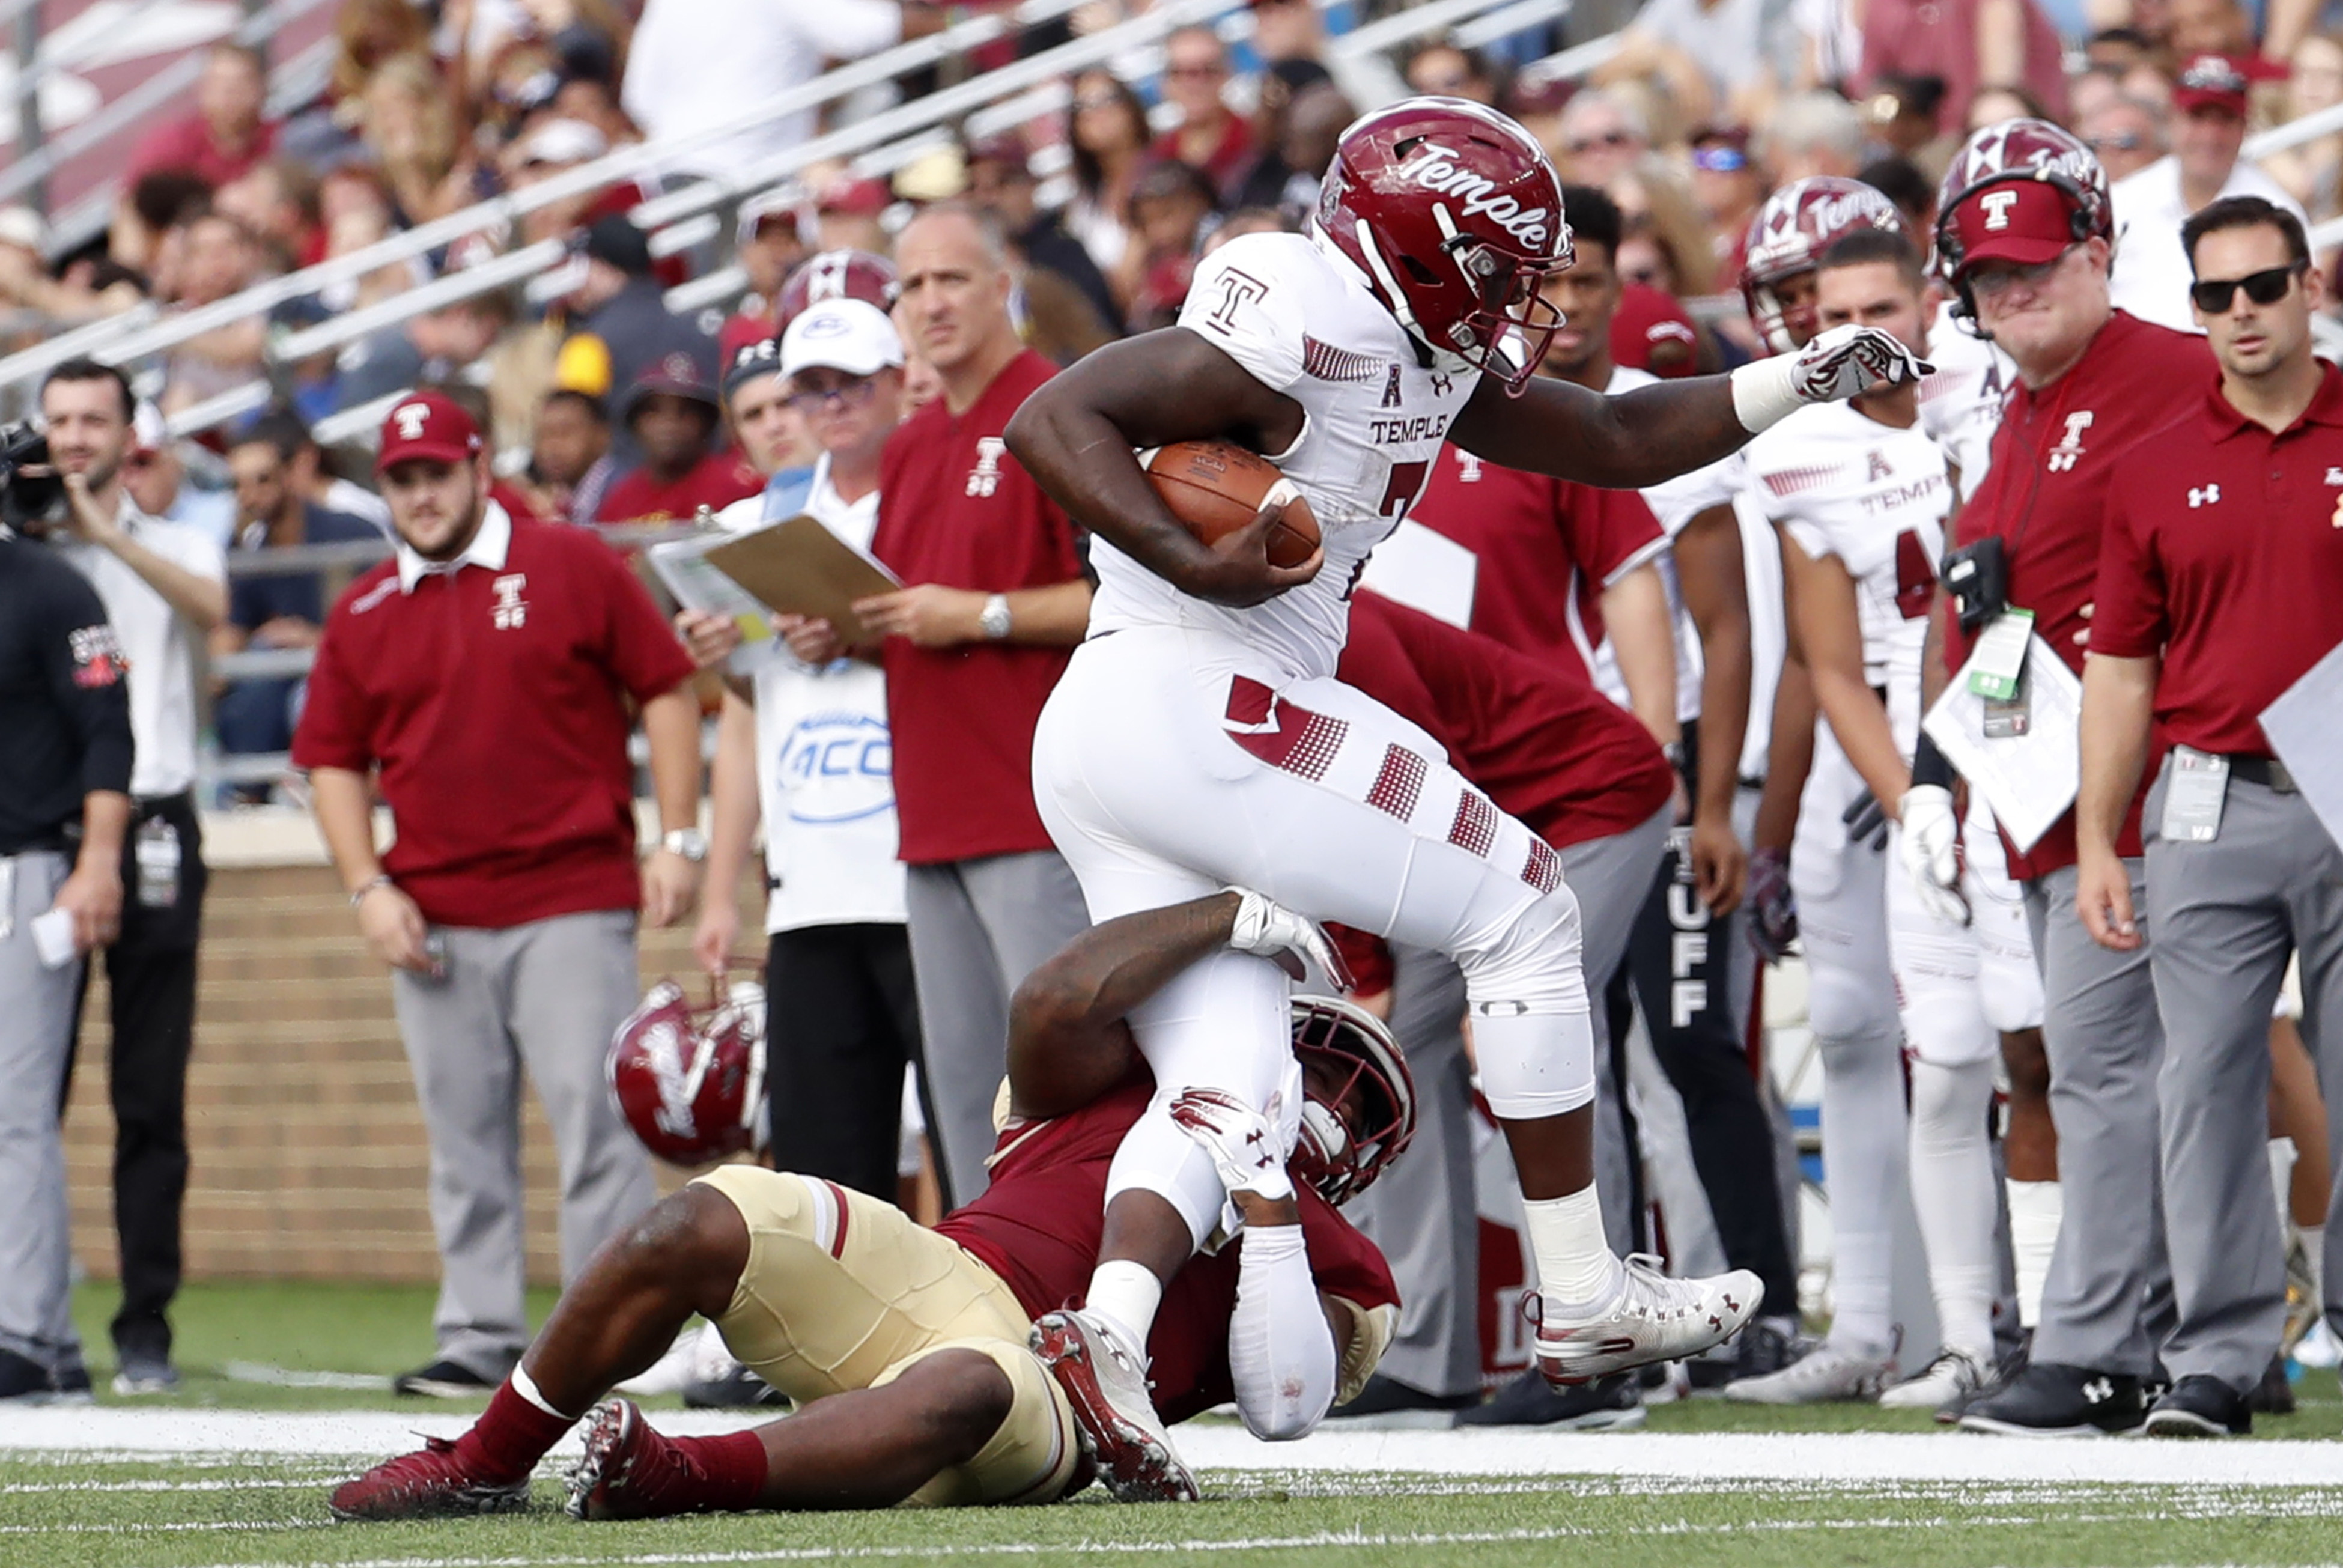 COLLEGE FOOTBALL: SEP 29 Temple at Boston College